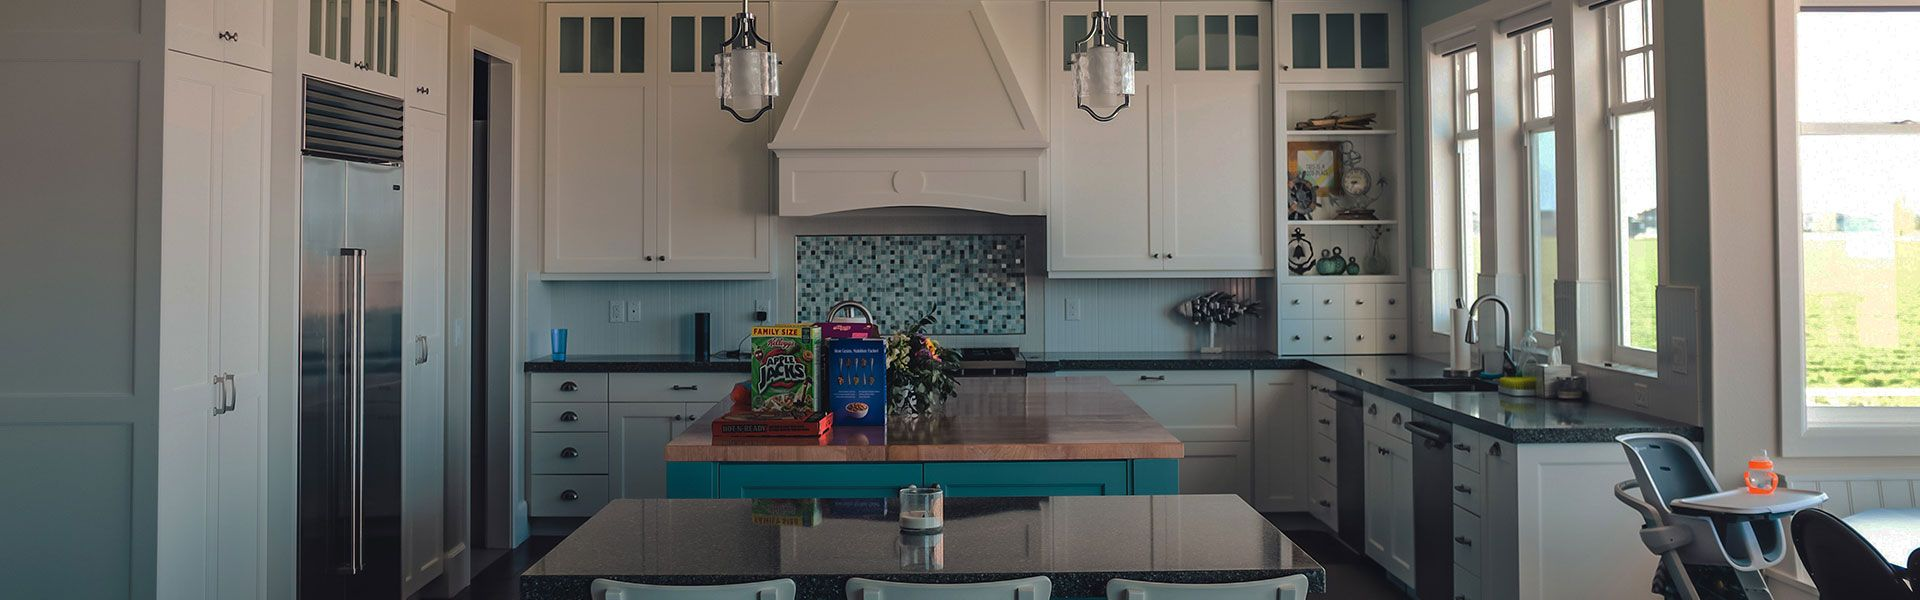 Kitchen remodeling and renovation services in Portland.